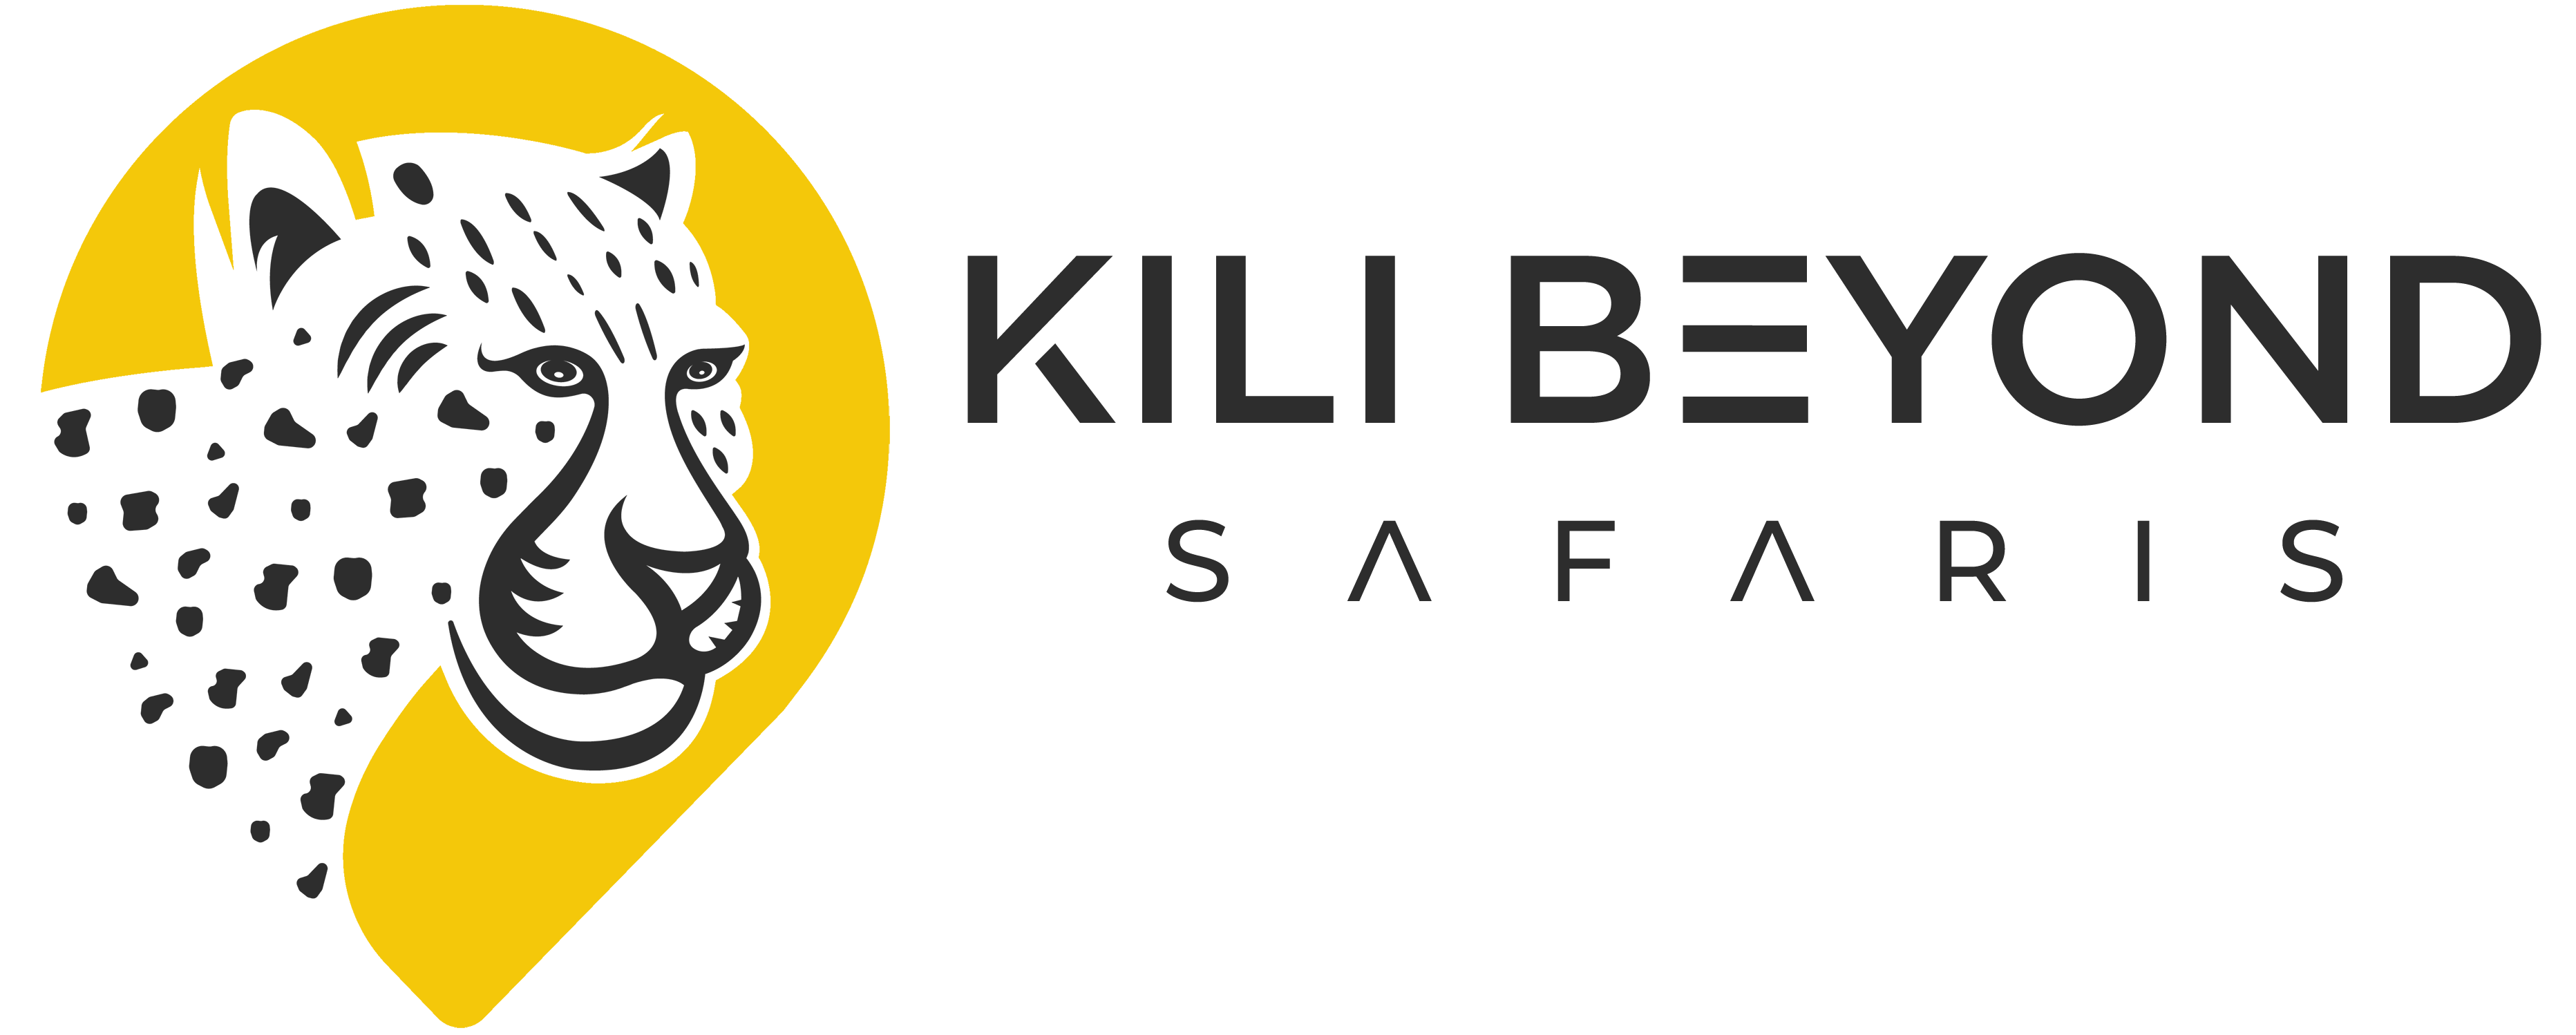 KILIBEYOND SAFARIS